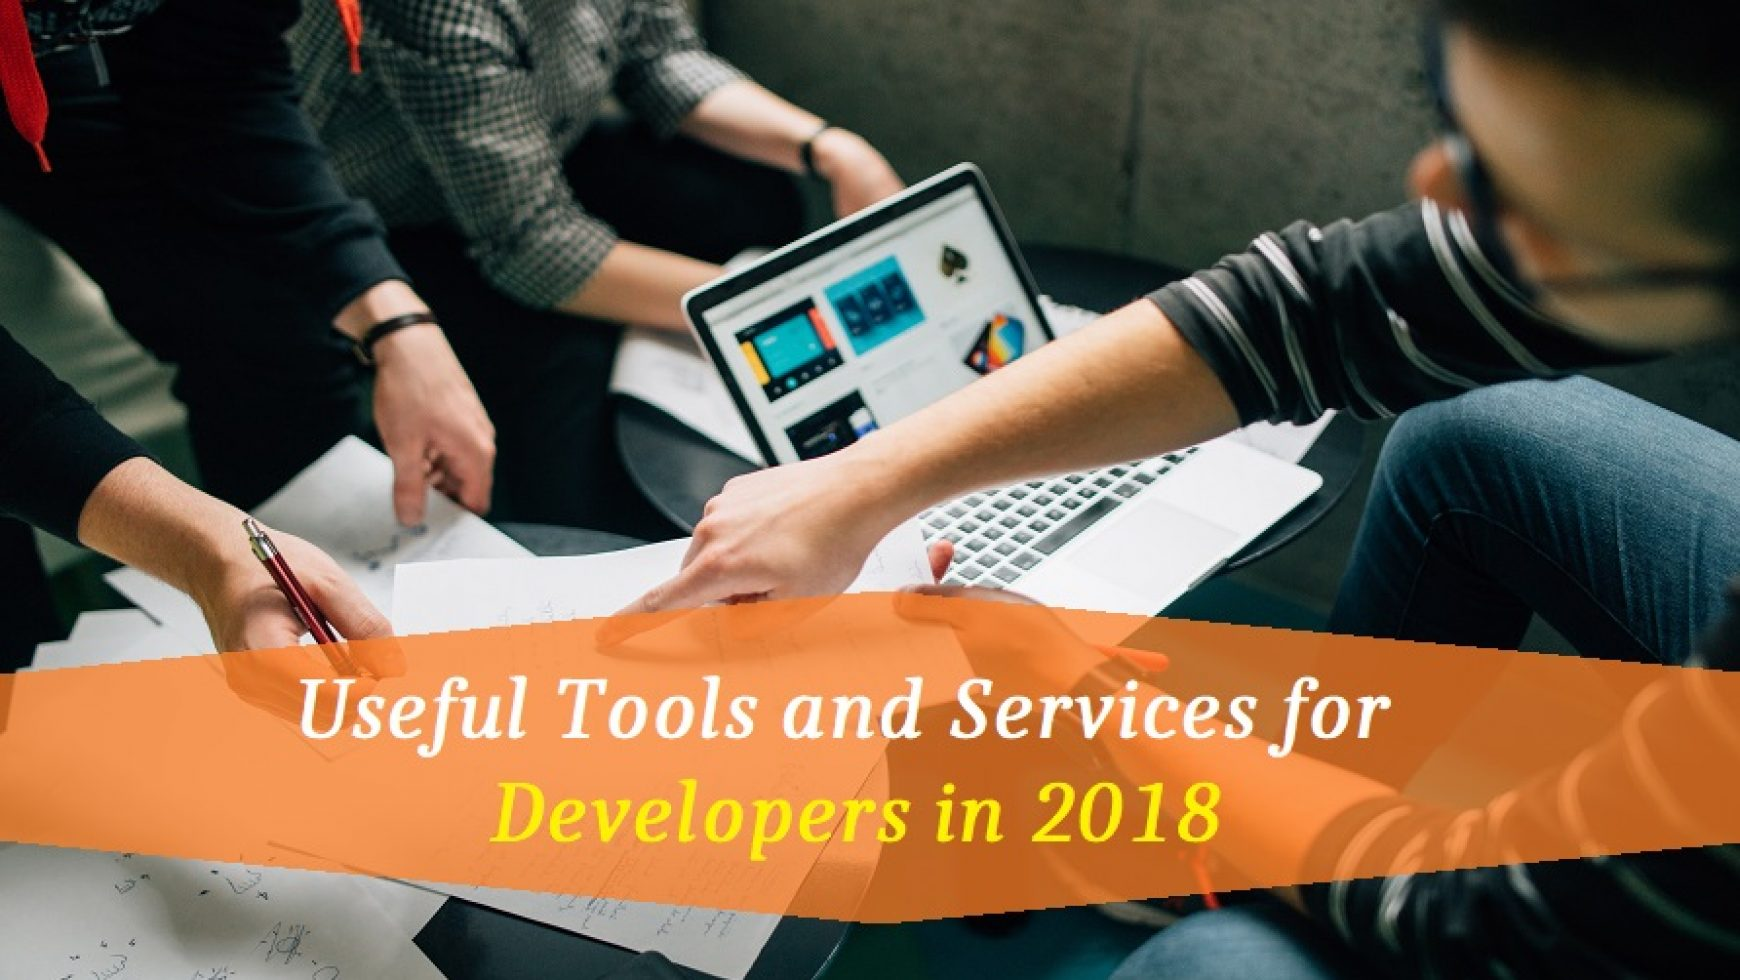 Useful Tools and Services for Developers in 2018